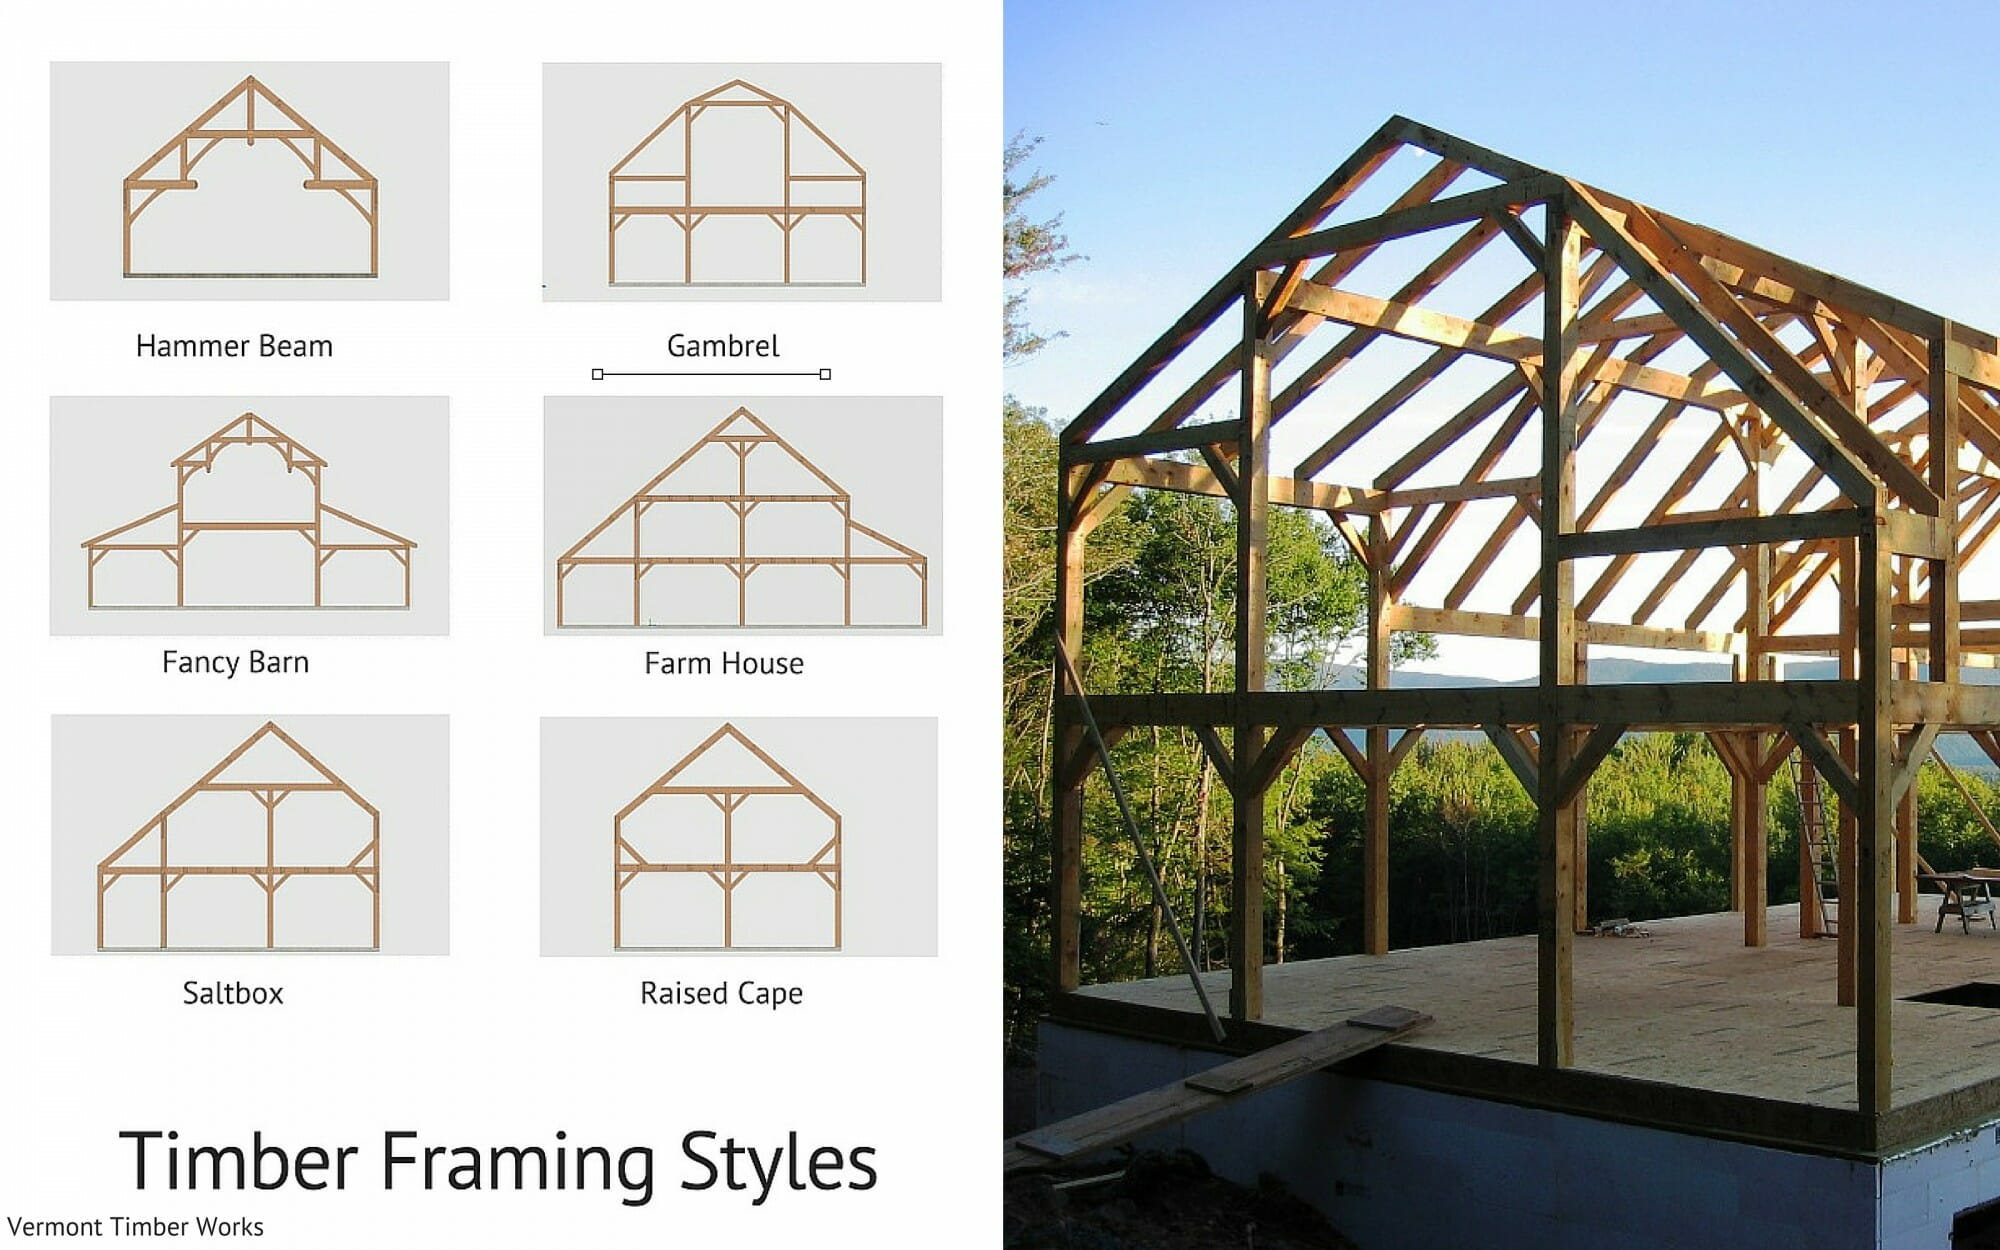 Timber Framing Style Gambrel